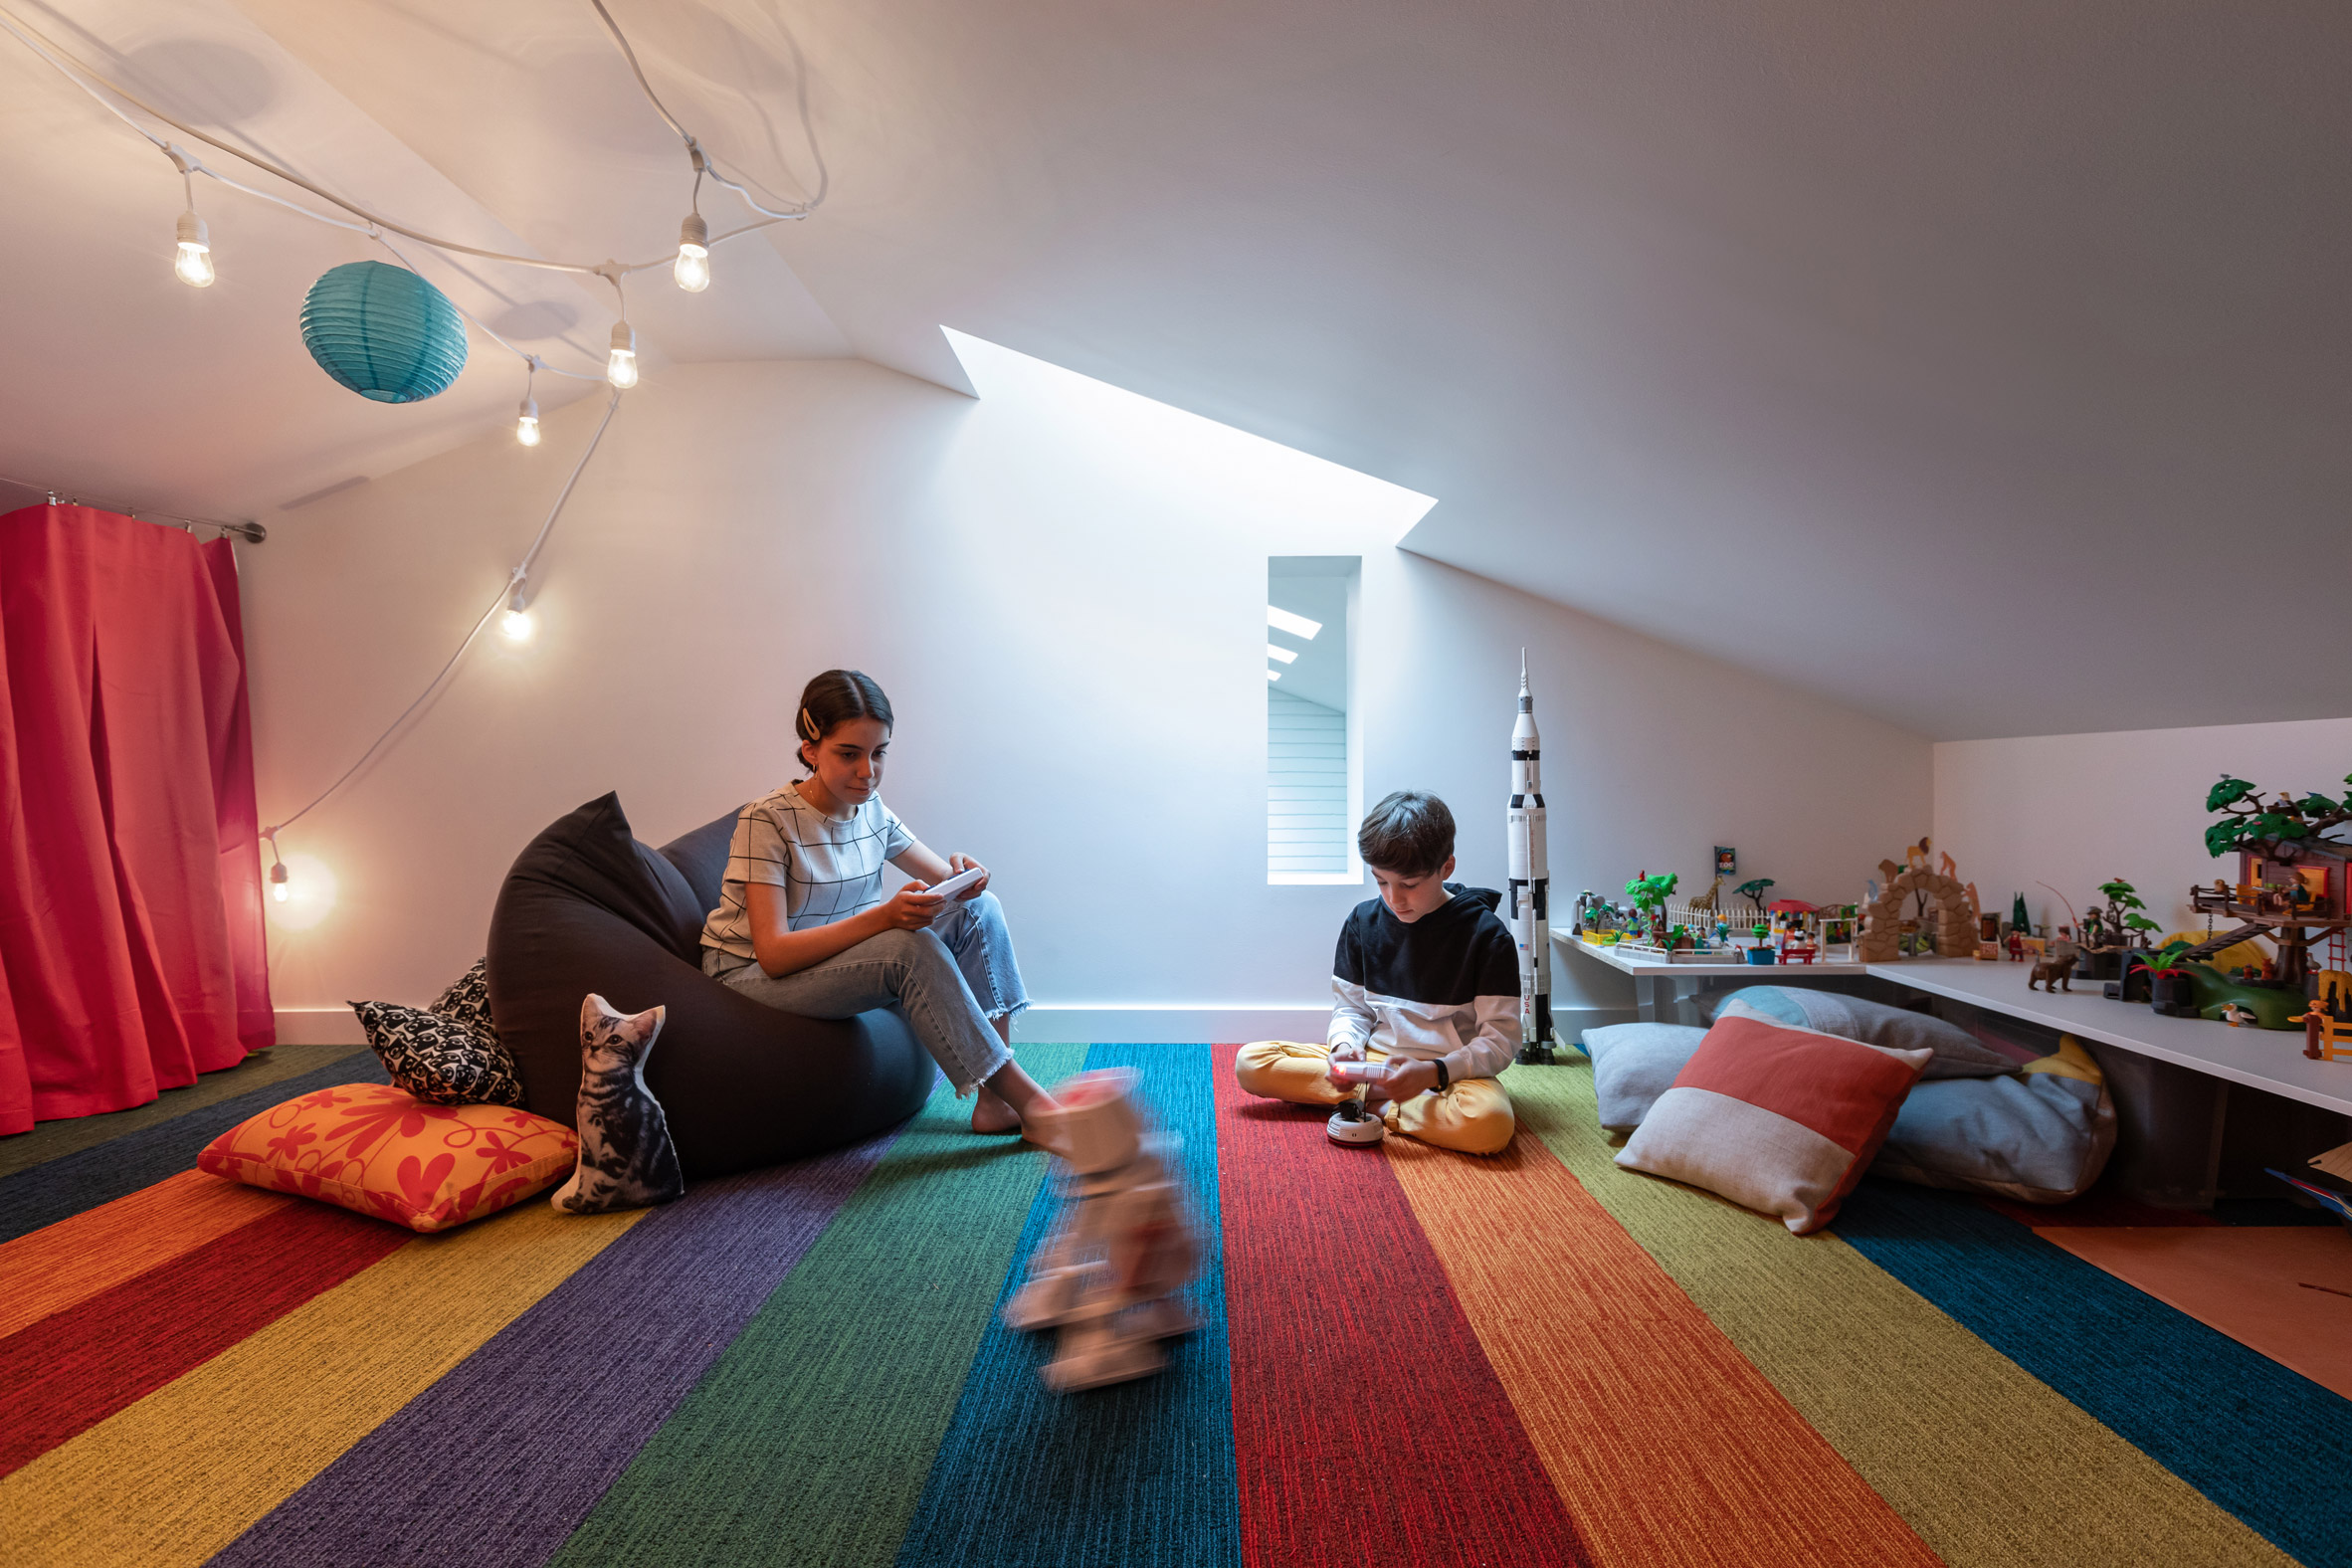 RSAAW converted the property's attic into a cosy playroom